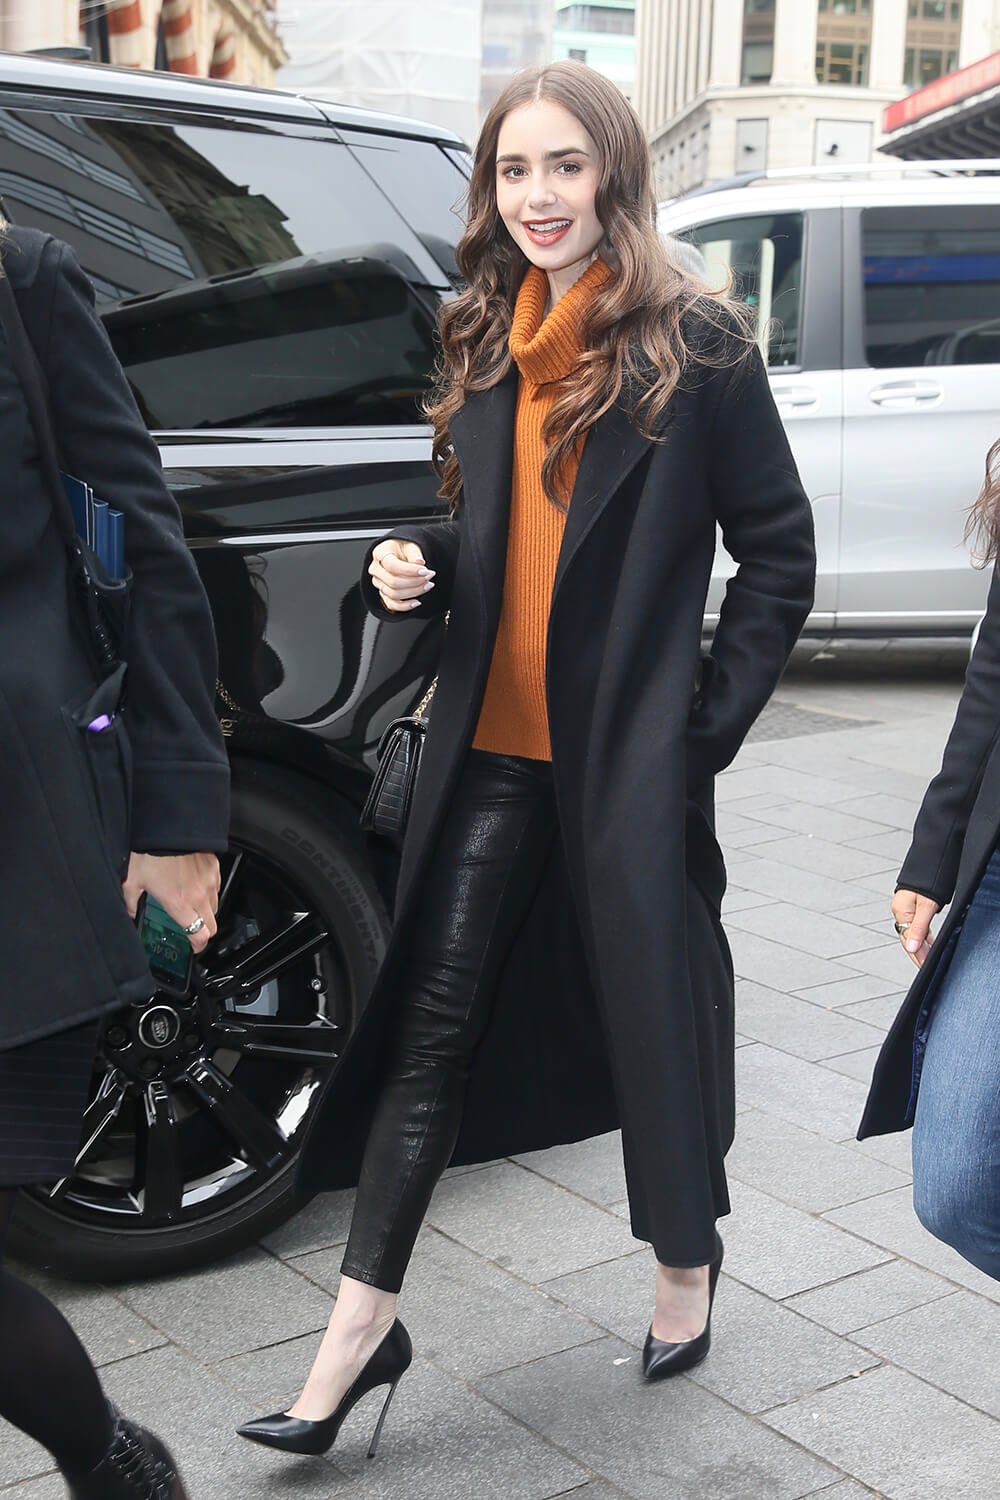 Lily Collins seen arriving at Global studios for radio interviews in London, 04/29/2019